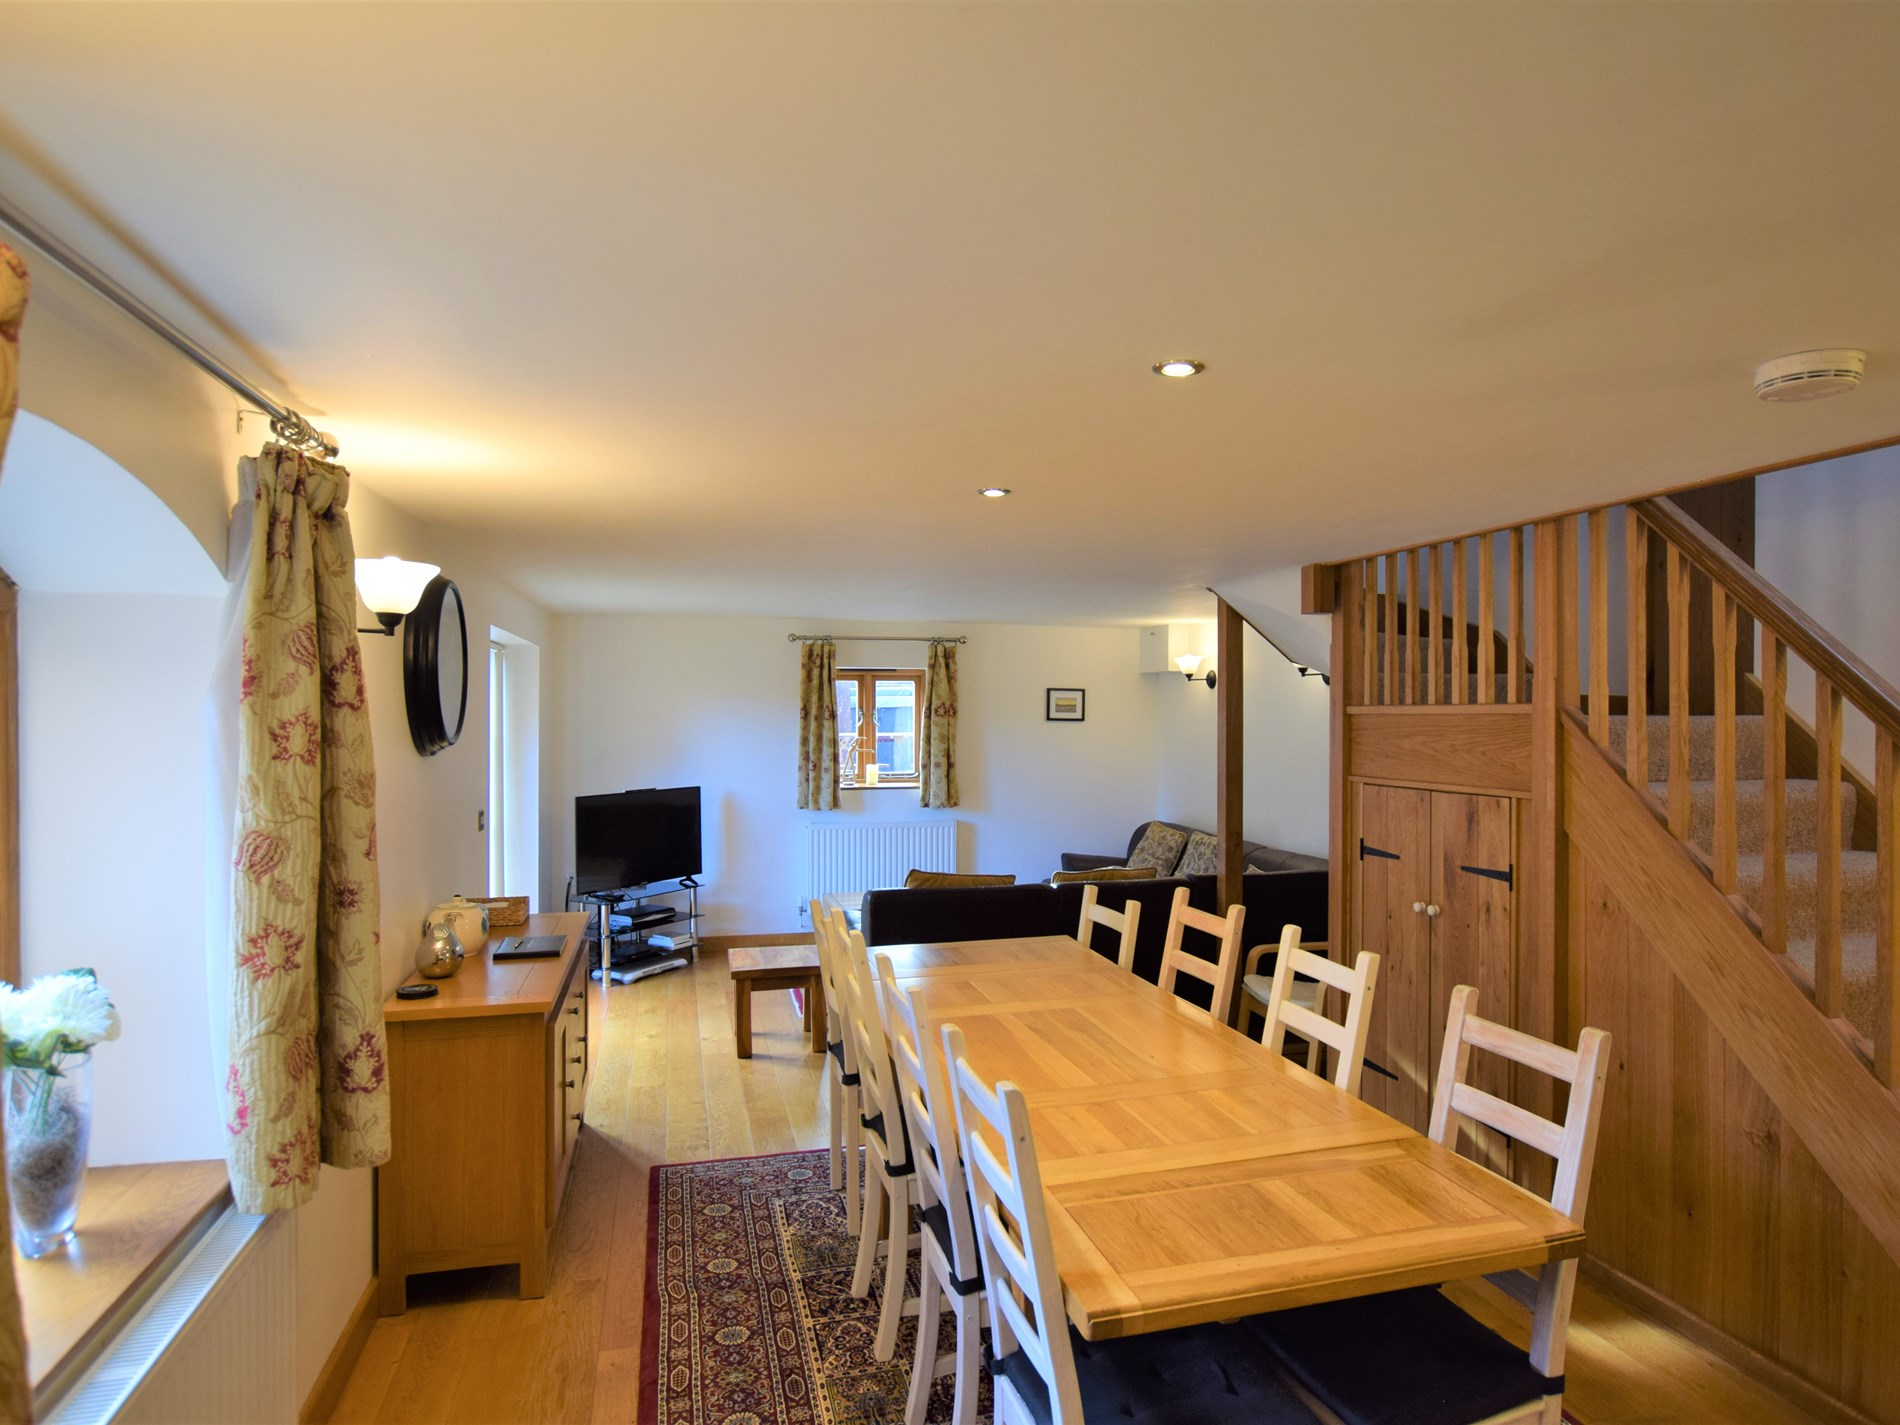 4 Bedroom Cottage in Shrewsbury, Heart of England